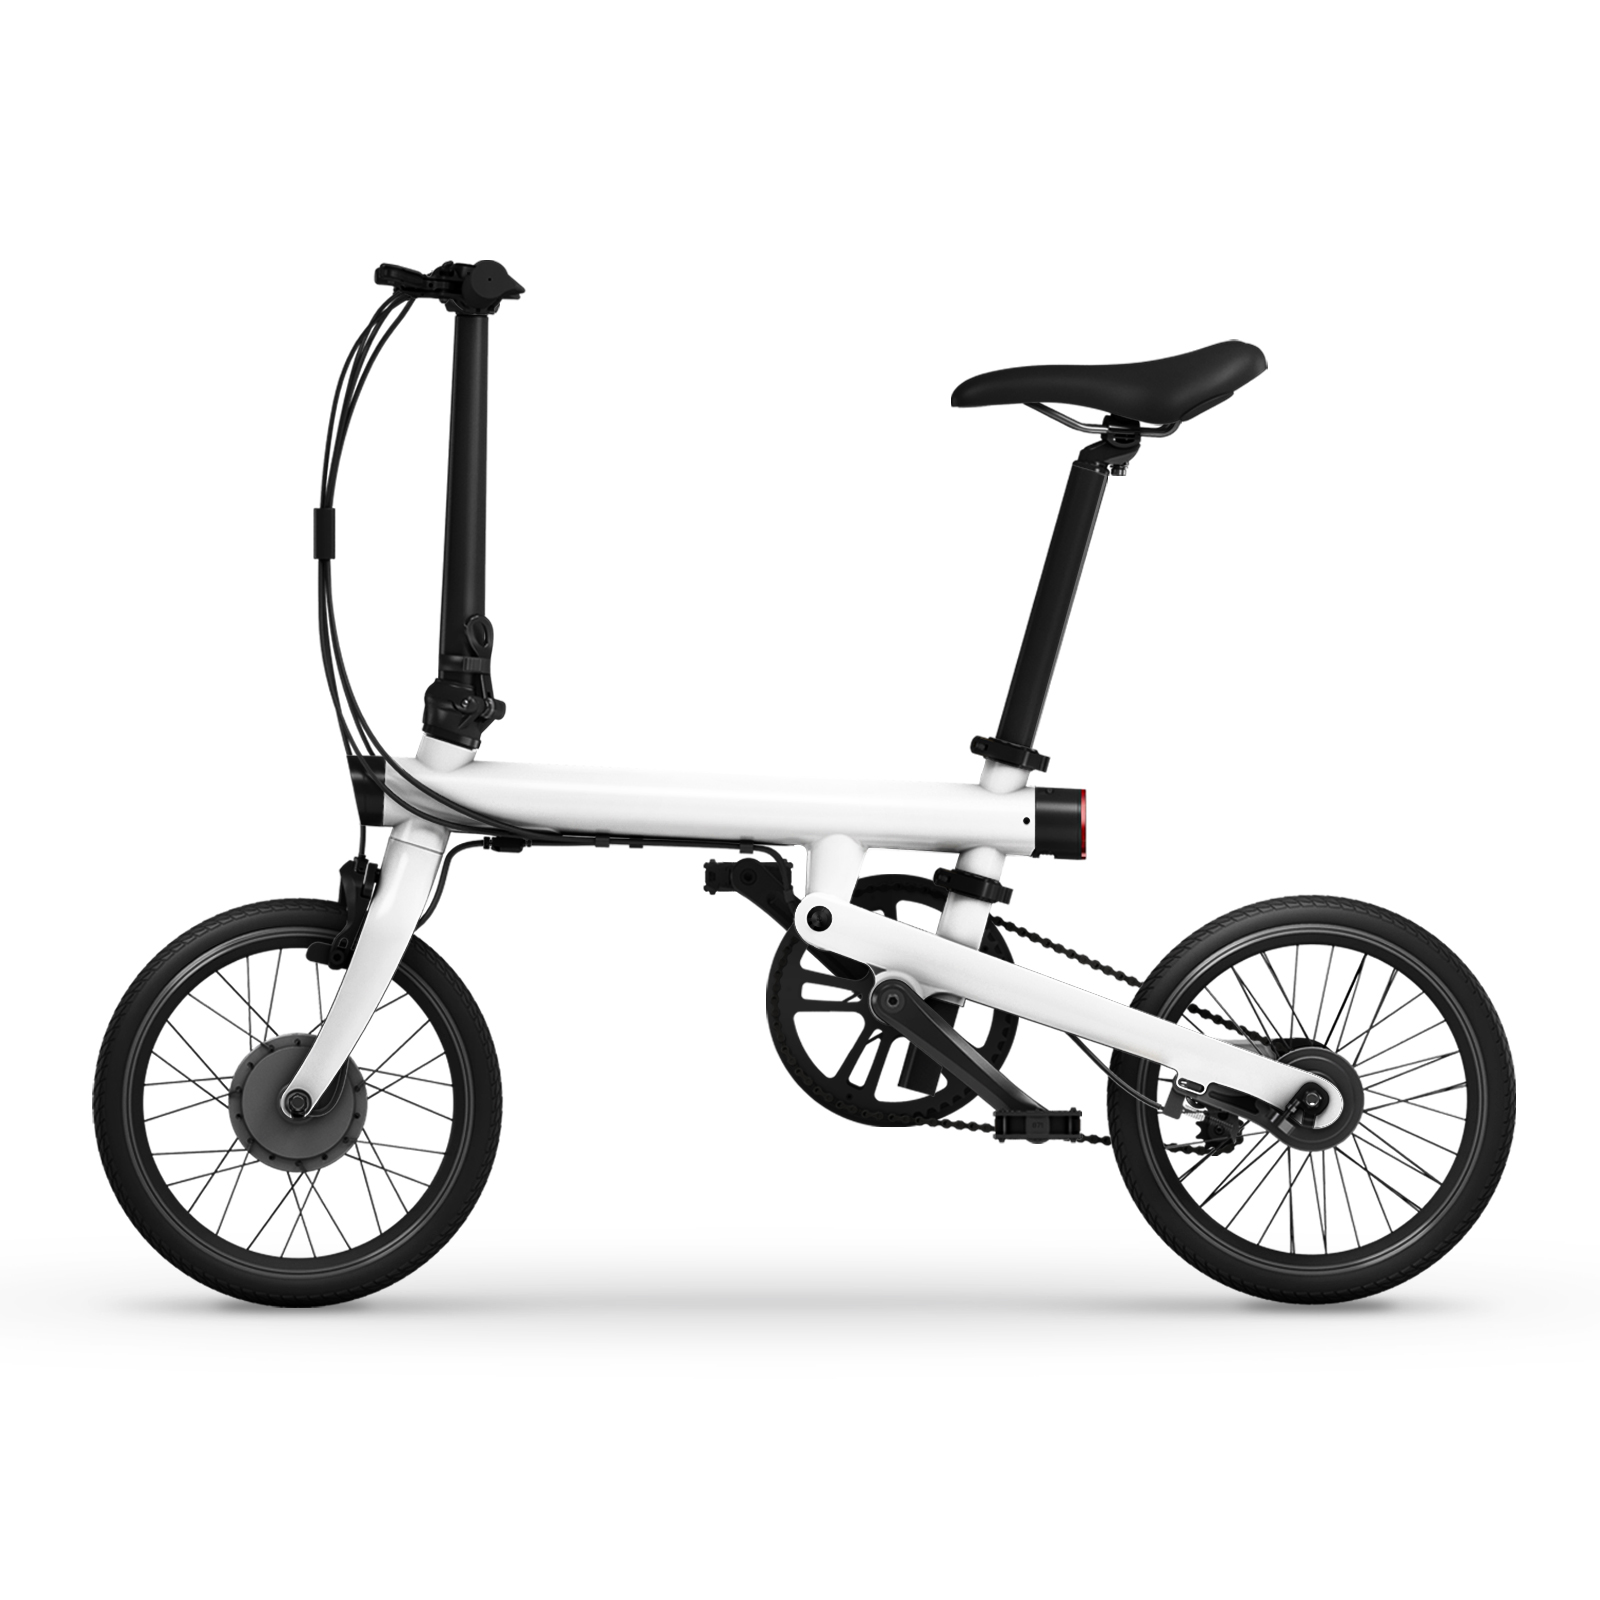 xiaomi mijia qicycle electric bike thevipmi first xiaomi online store in the middle east. Black Bedroom Furniture Sets. Home Design Ideas